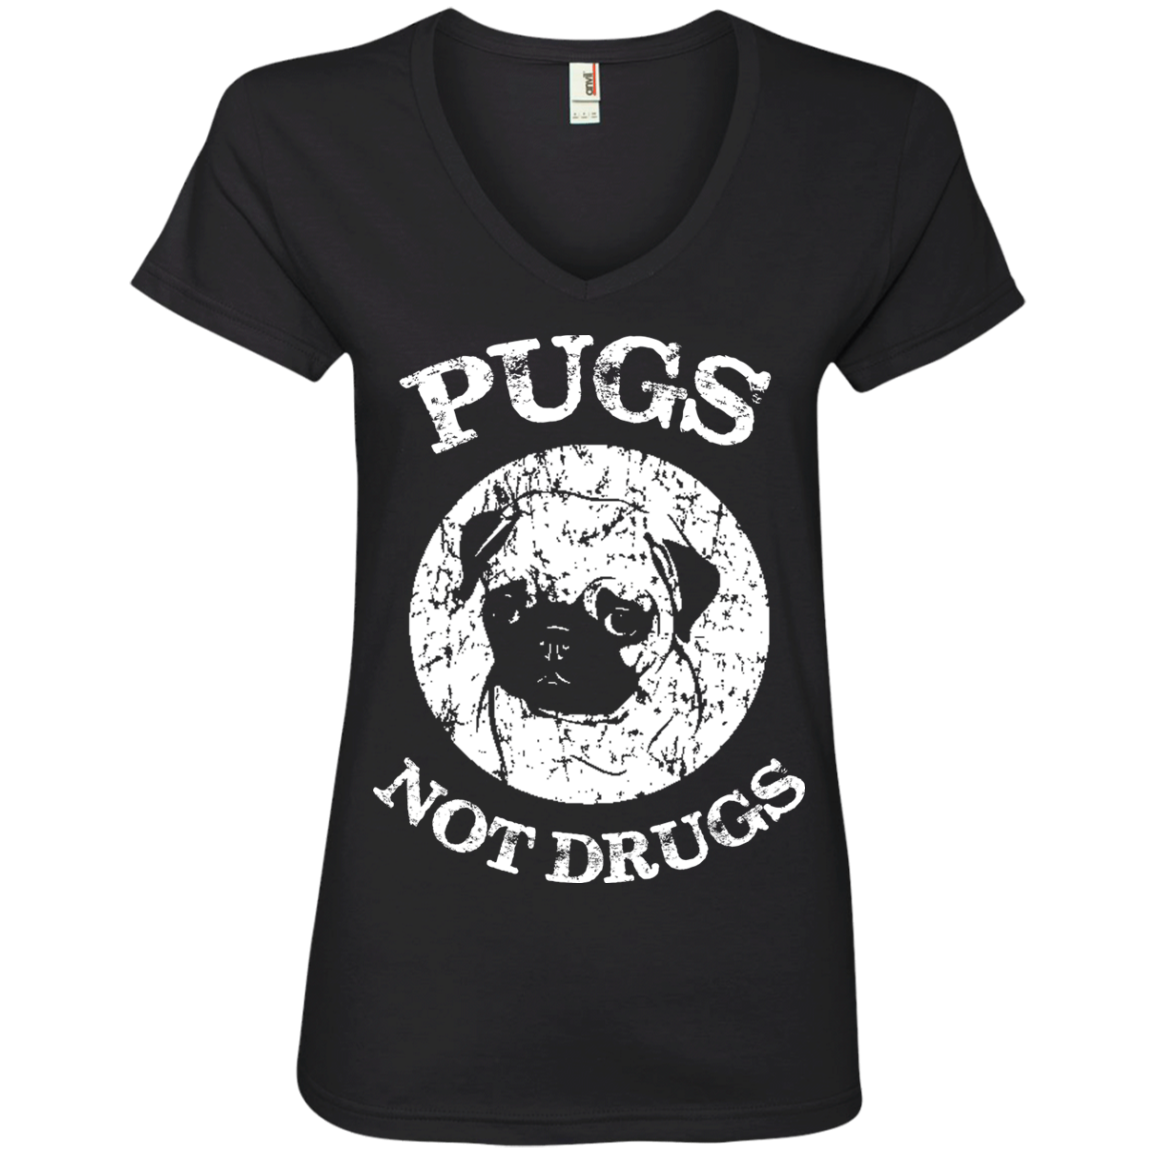 Pugs Not Drugs Ladies' V-Neck T-Shirt